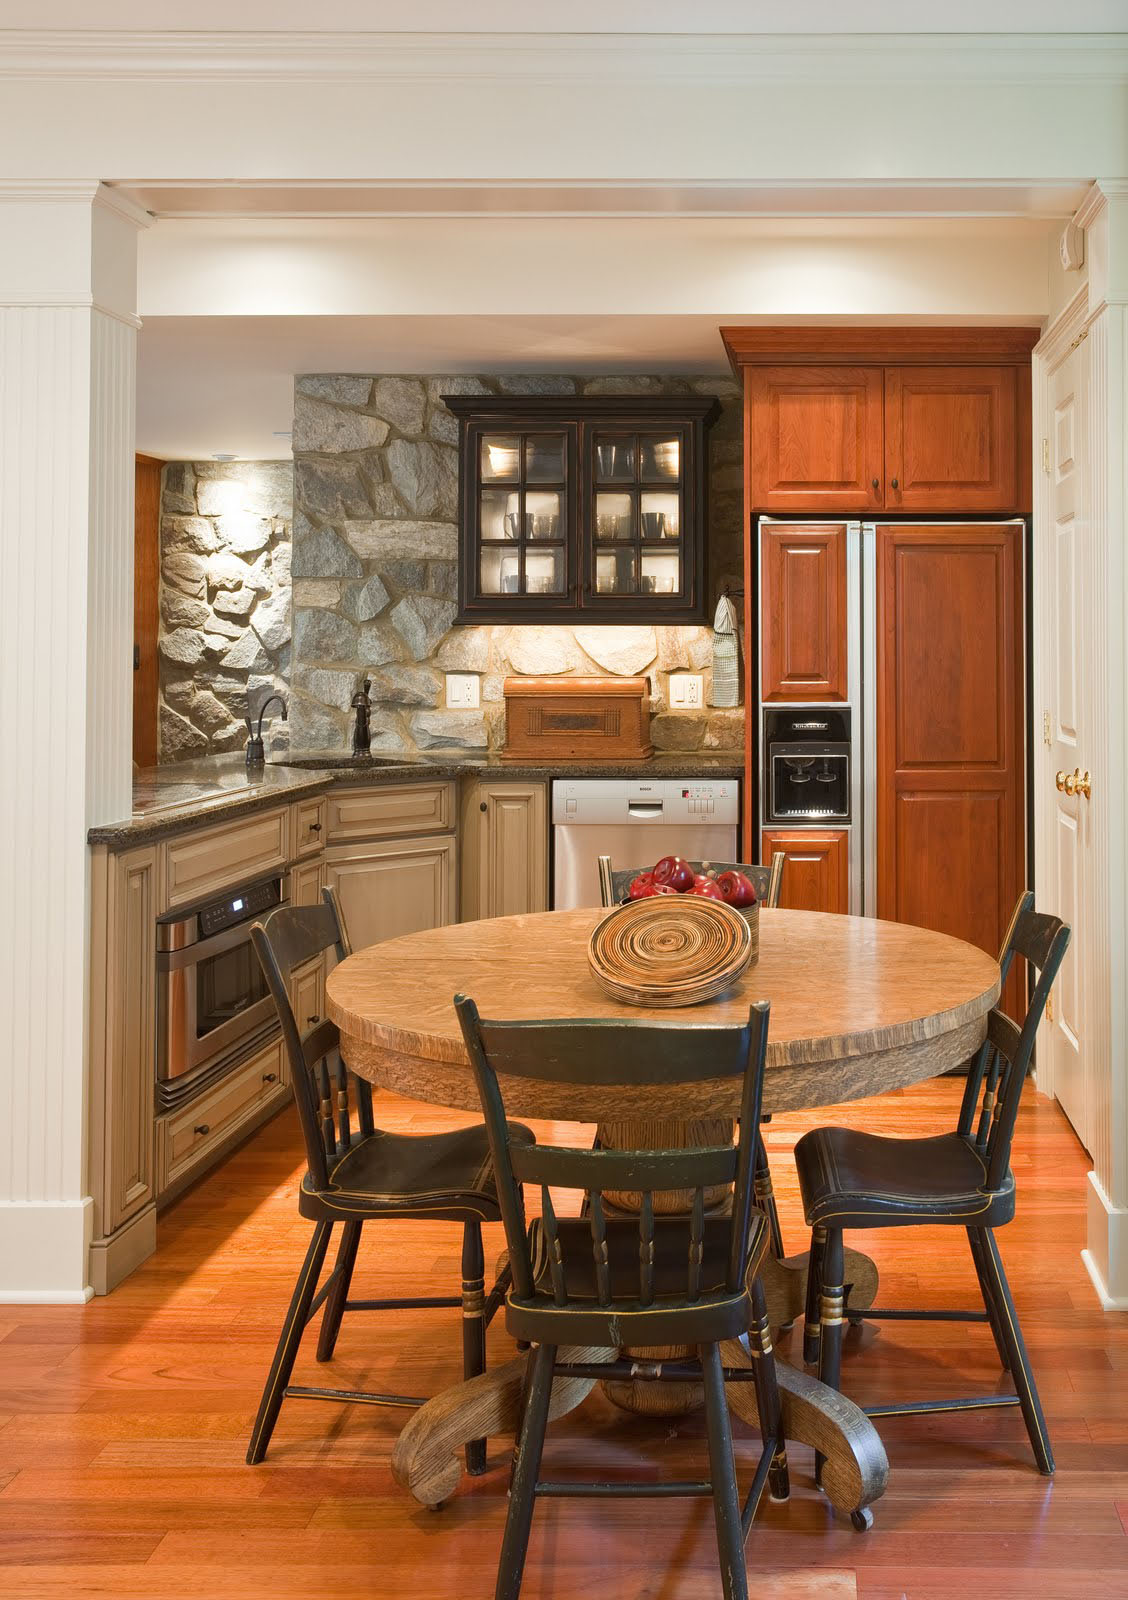 Long Island Kitchen Design Basement Renovation With Rustic Stone Walls | Idesignarch